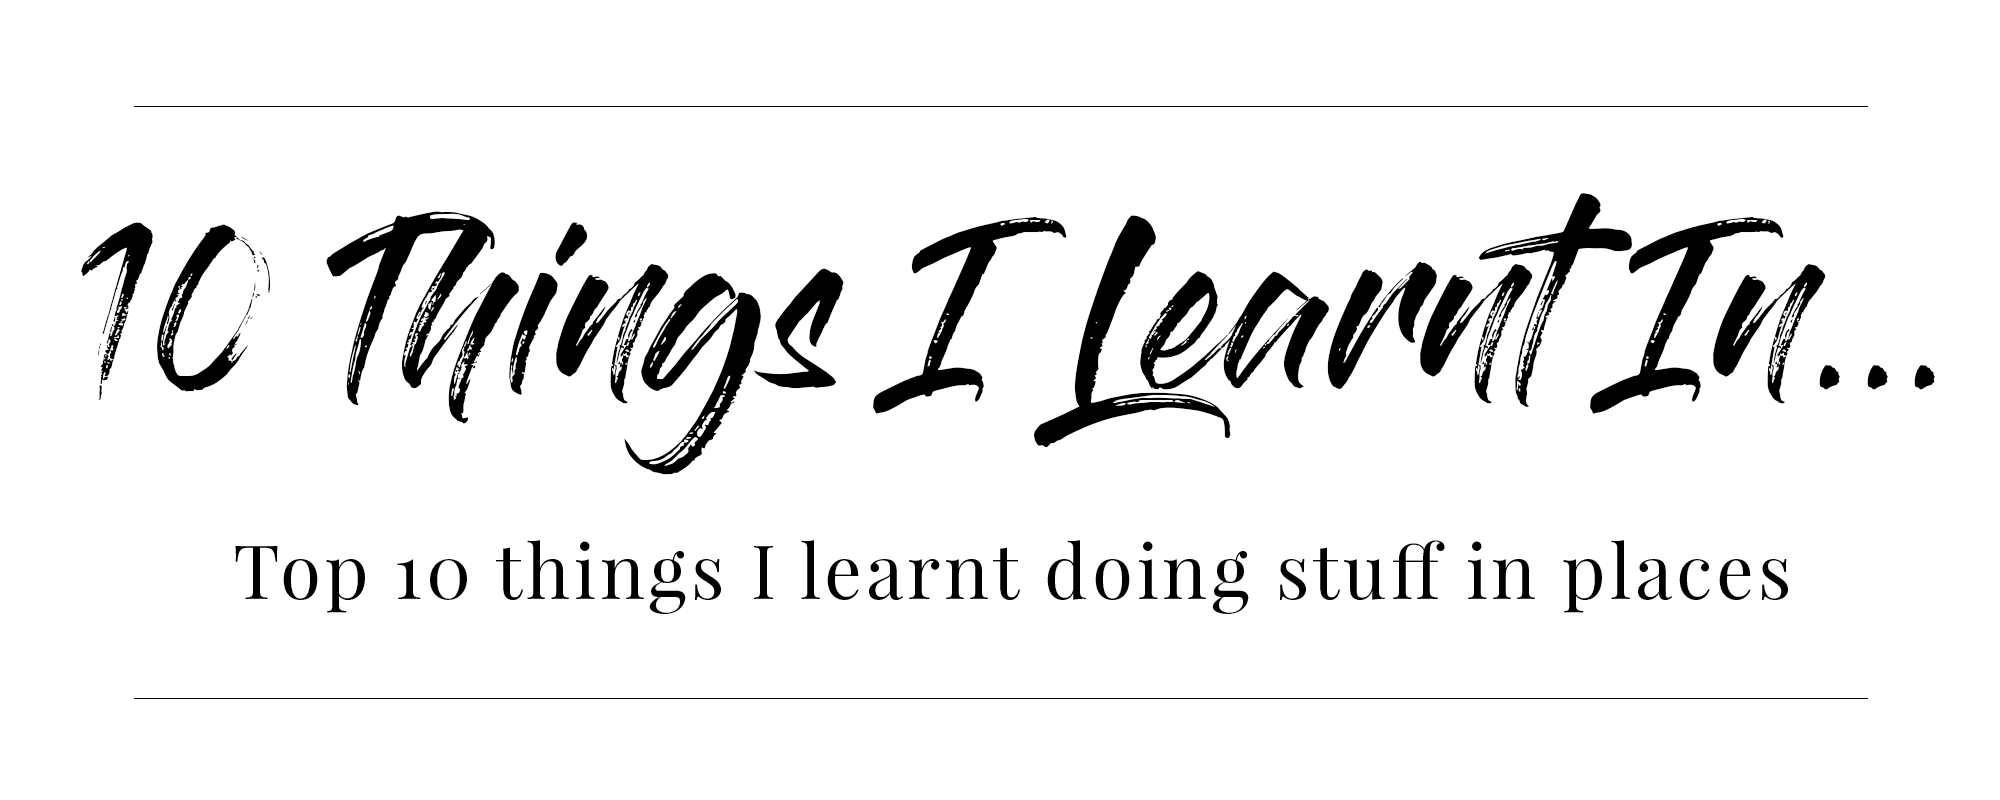 10 Things I Learnt In…